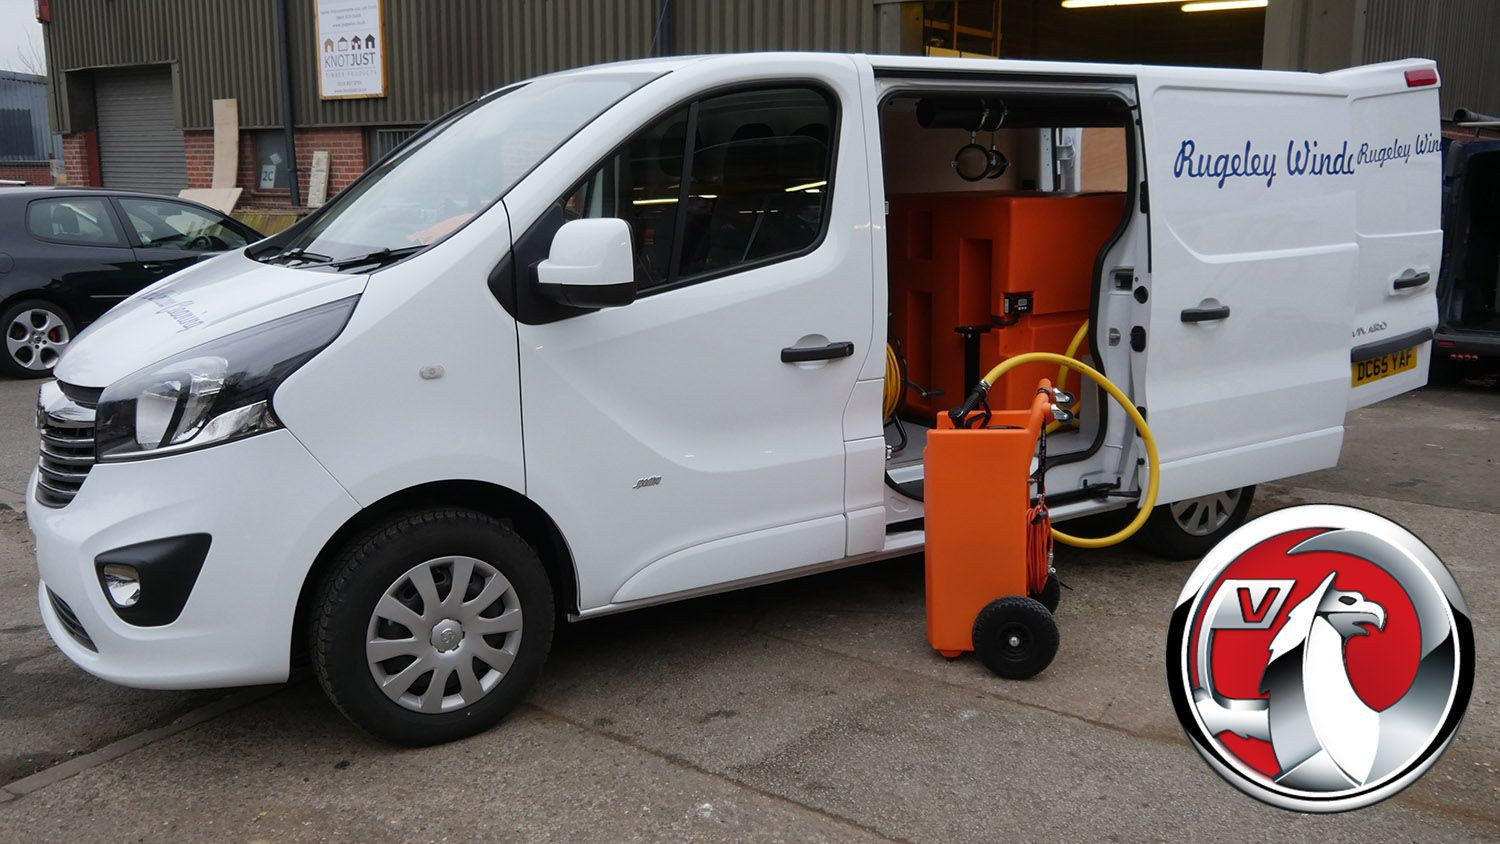 Vauxhall - Window Cleaning Van Systems